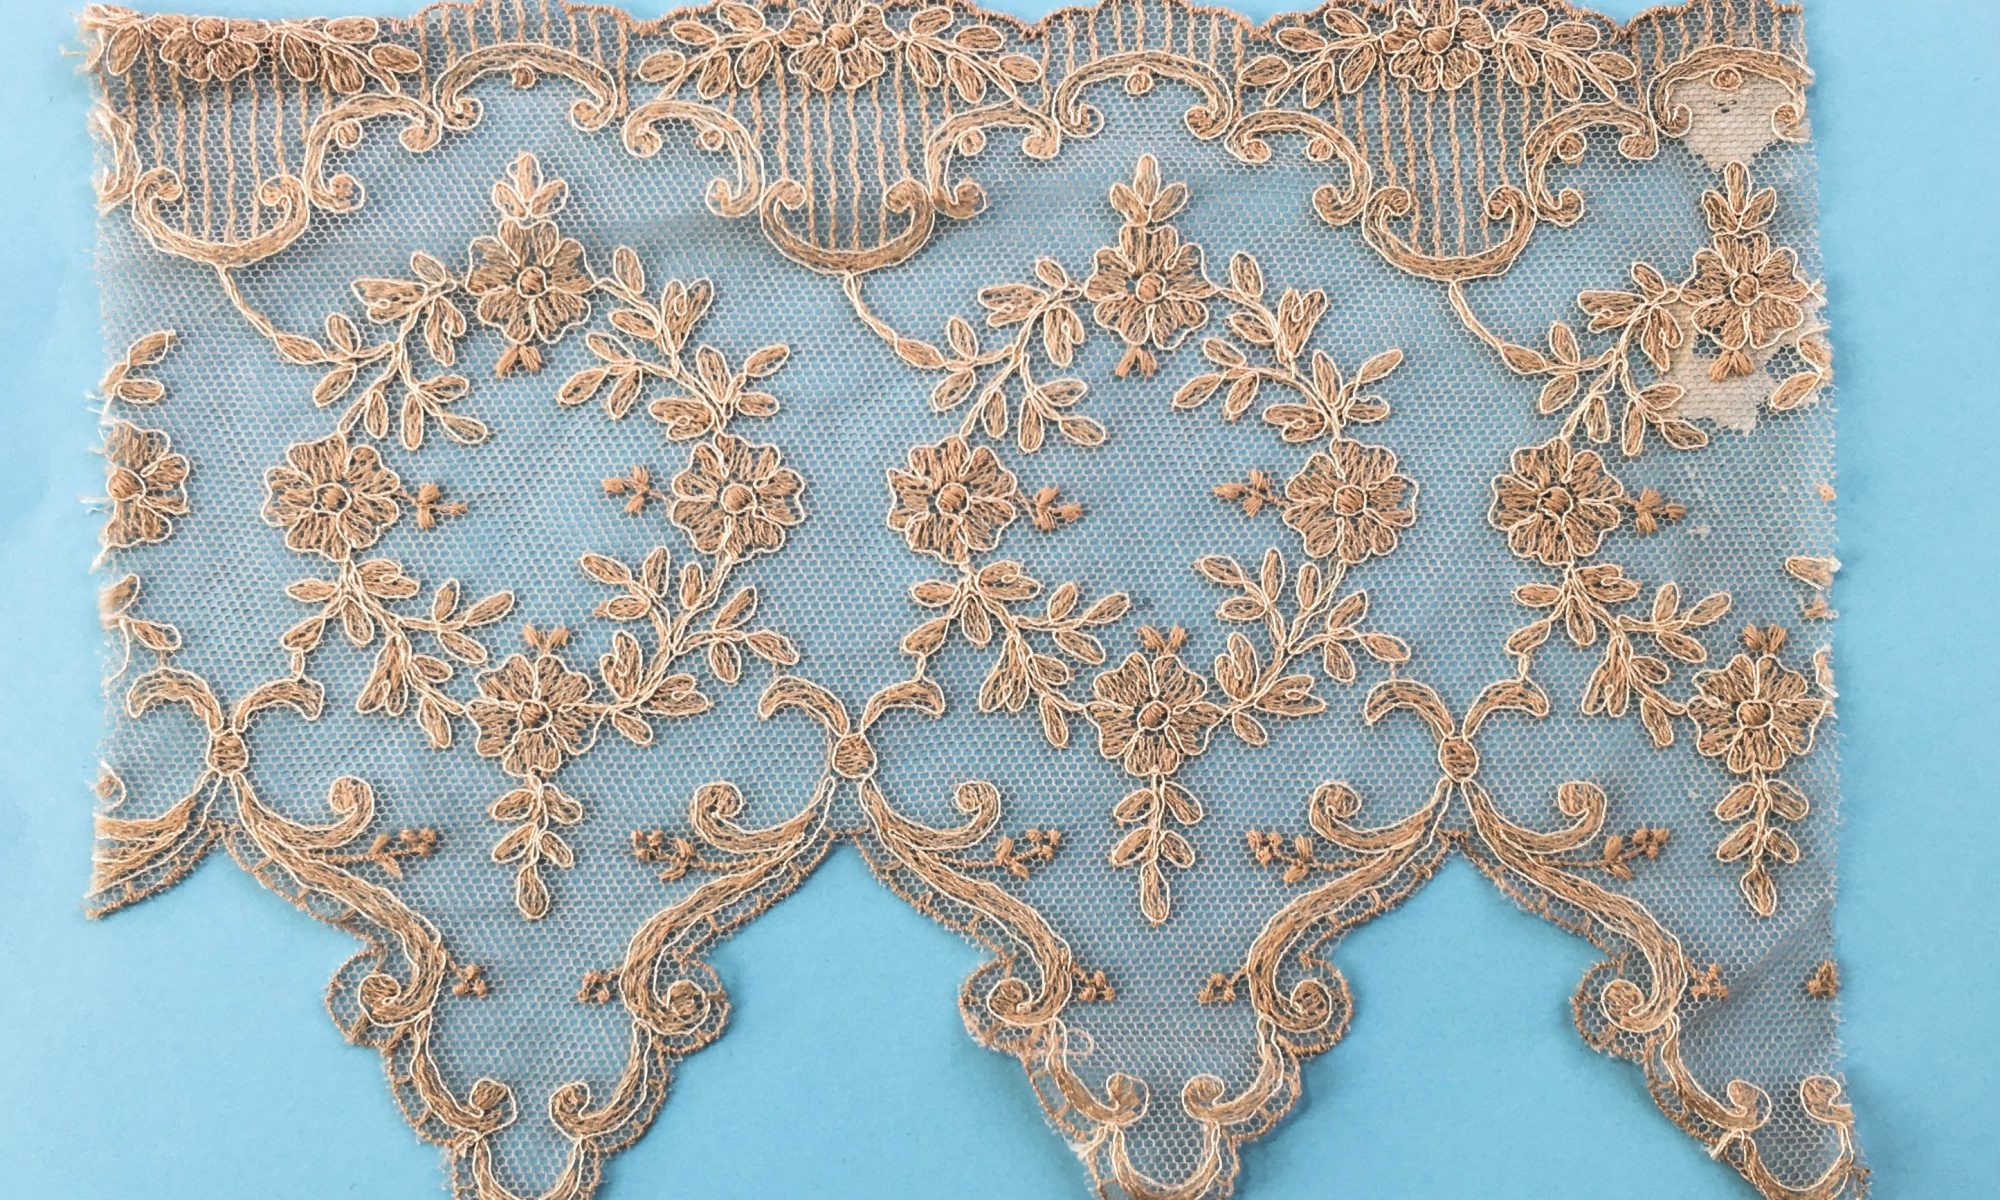 a picture of embroidered lace